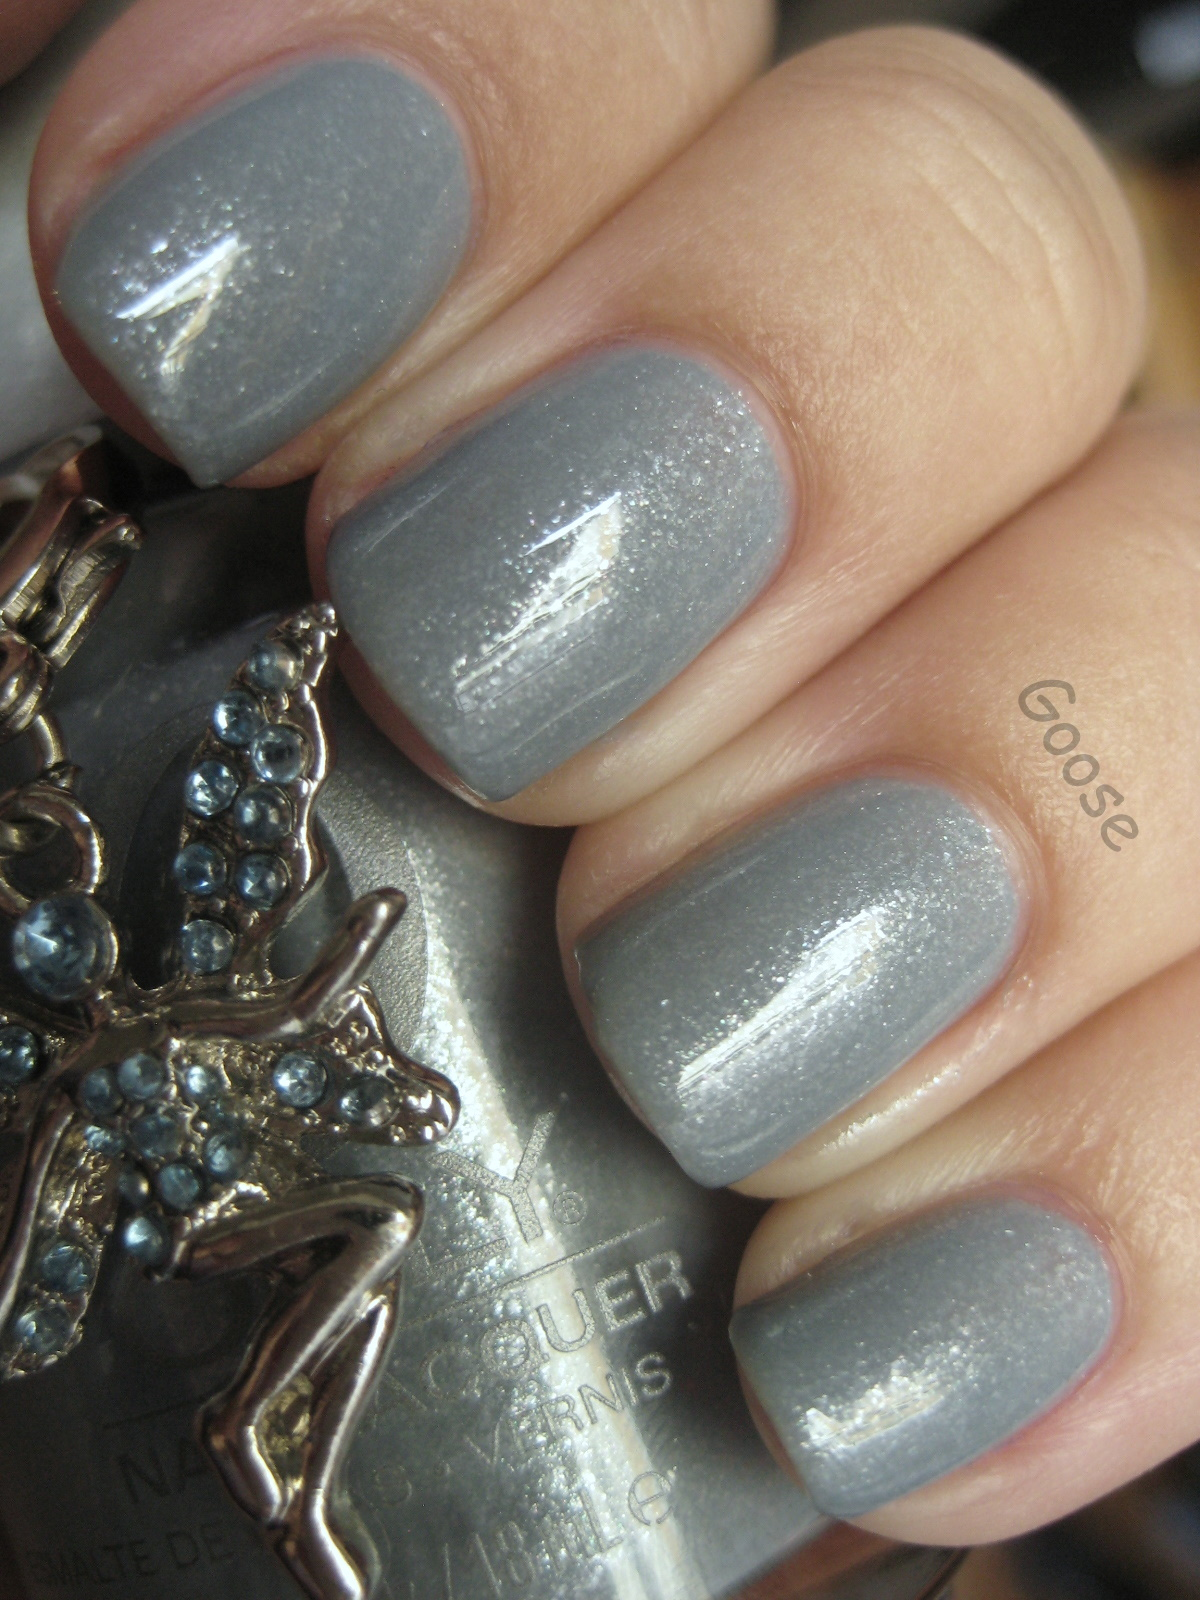 goose u0026 39 s glitter  first snow   orly pixie dust and nubar white polka dot